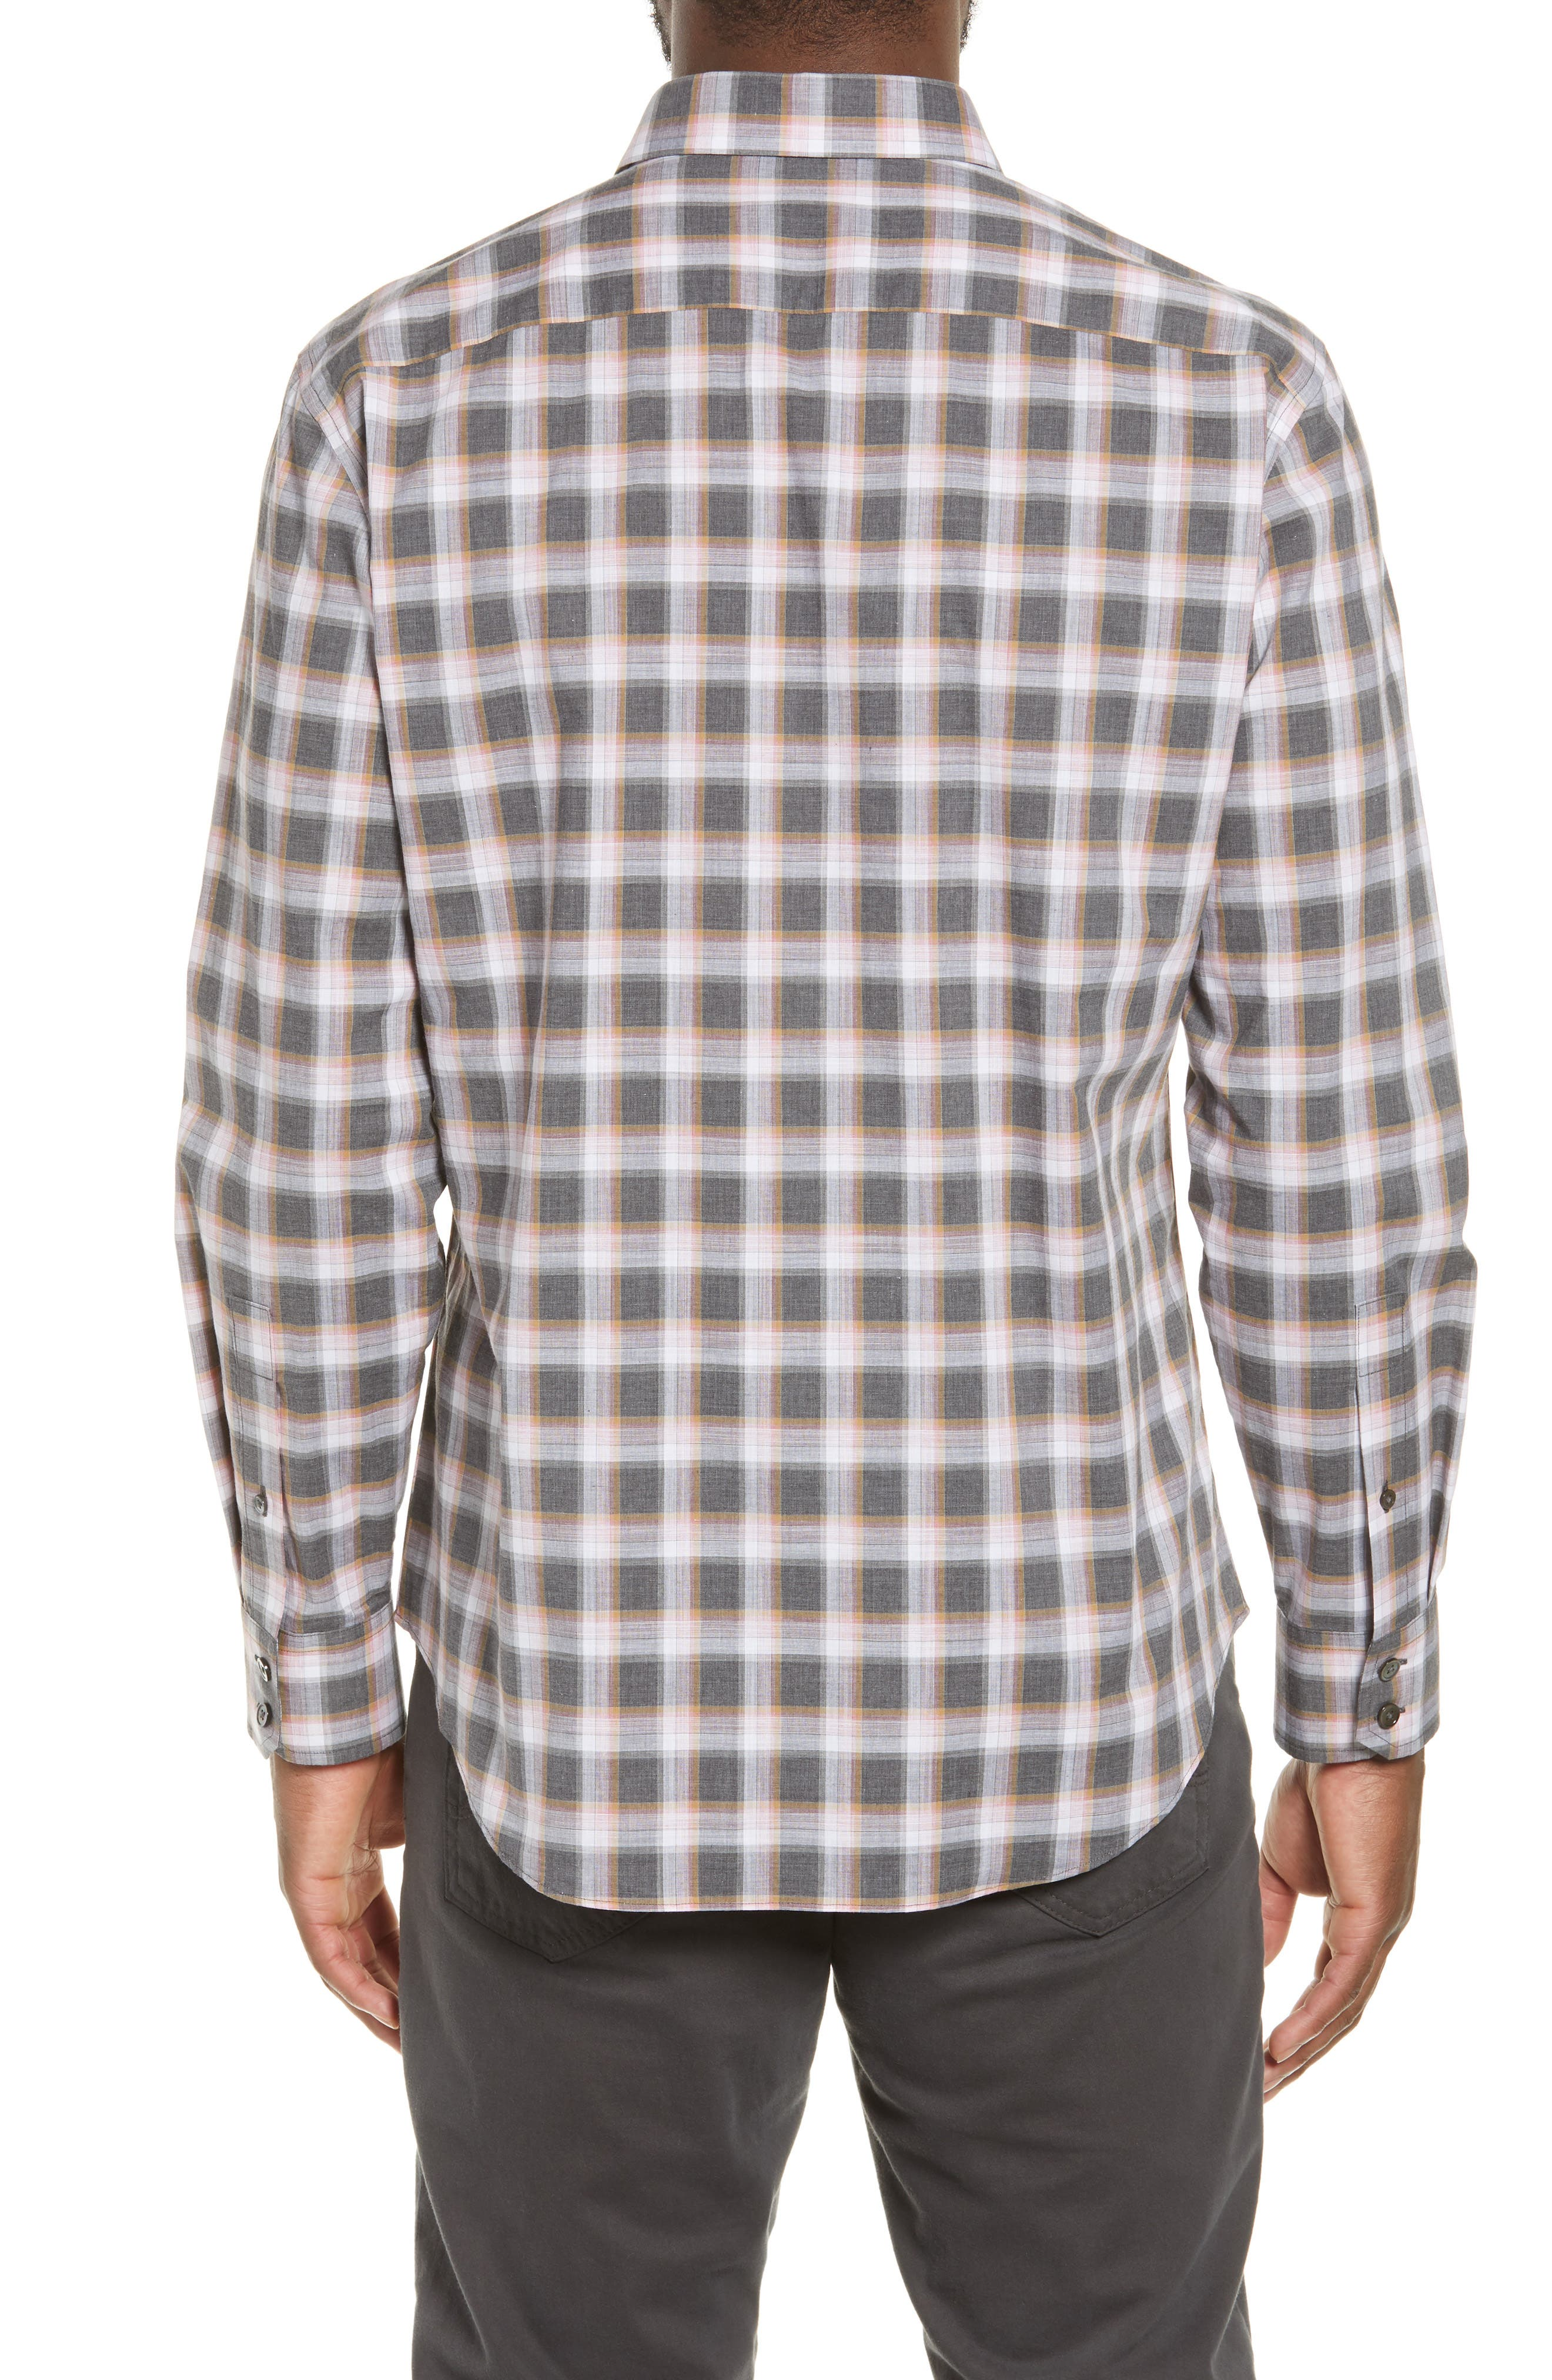 ZACHARY PRELL, Pagatpatan Regular Fit Plaid Sport Shirt, Alternate thumbnail 3, color, GREY